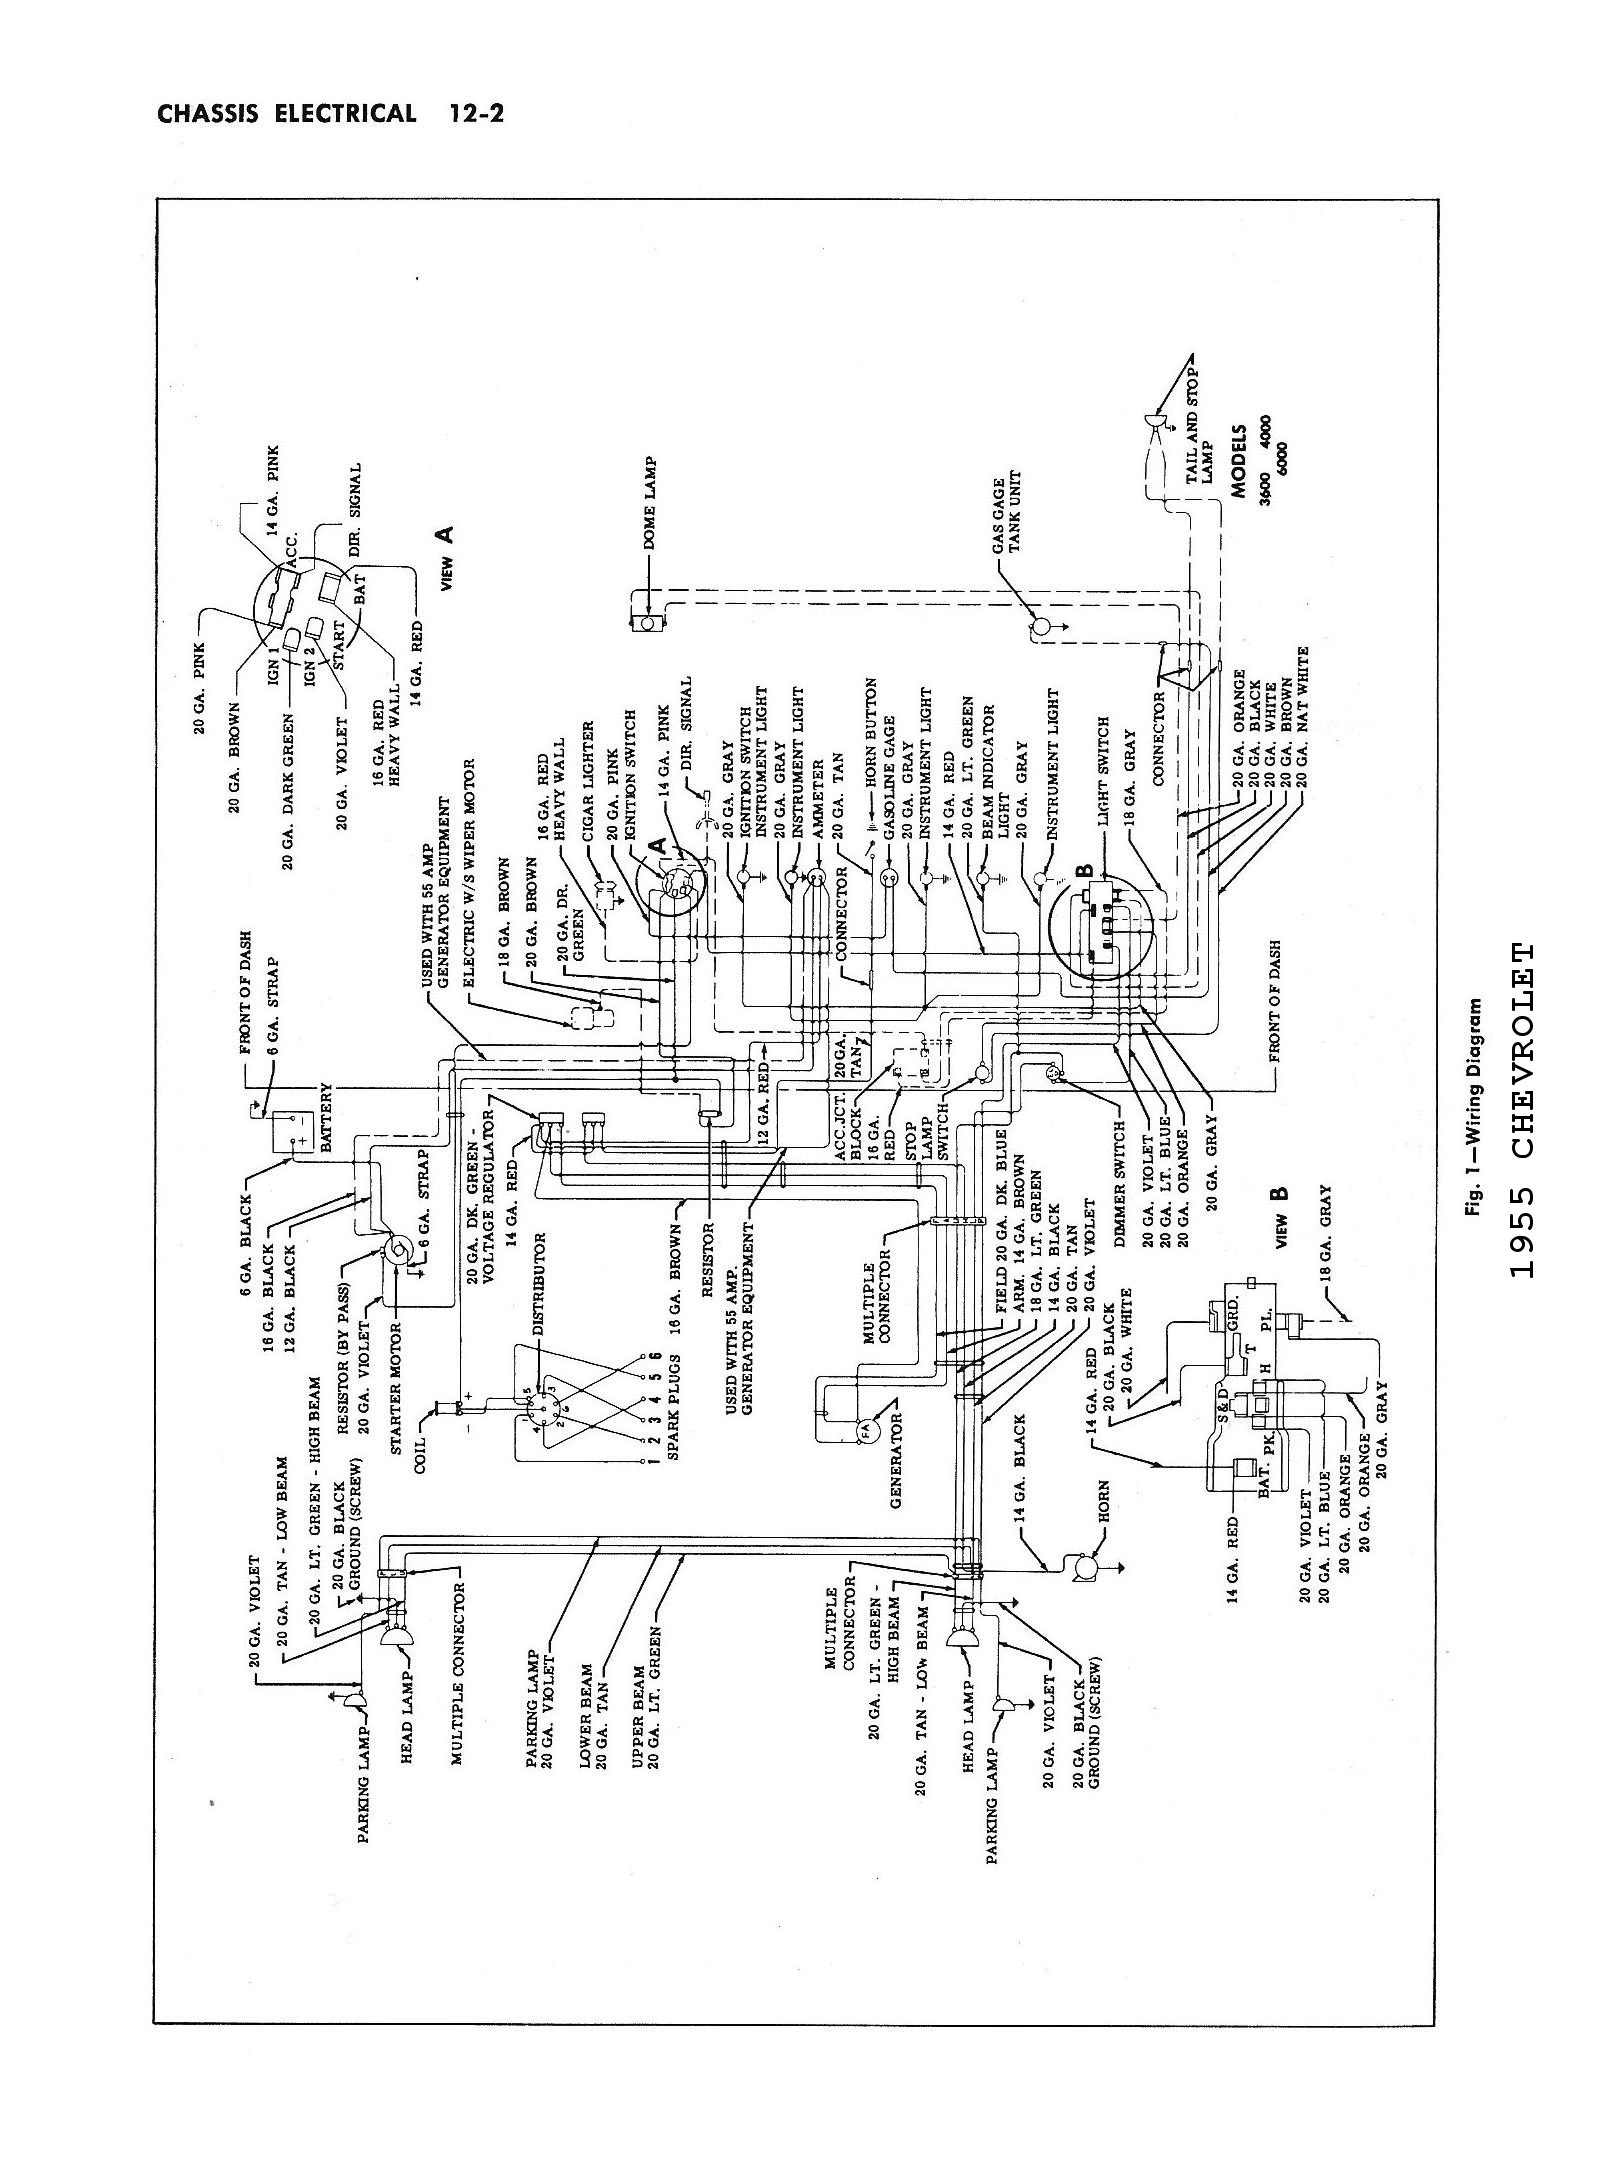 1958 283 Chevy Solinoid Wiring Diagram Library Toyota Pickup 4wd 22r Engine Auto Diagrams 1959 Data Schema 1993 3500